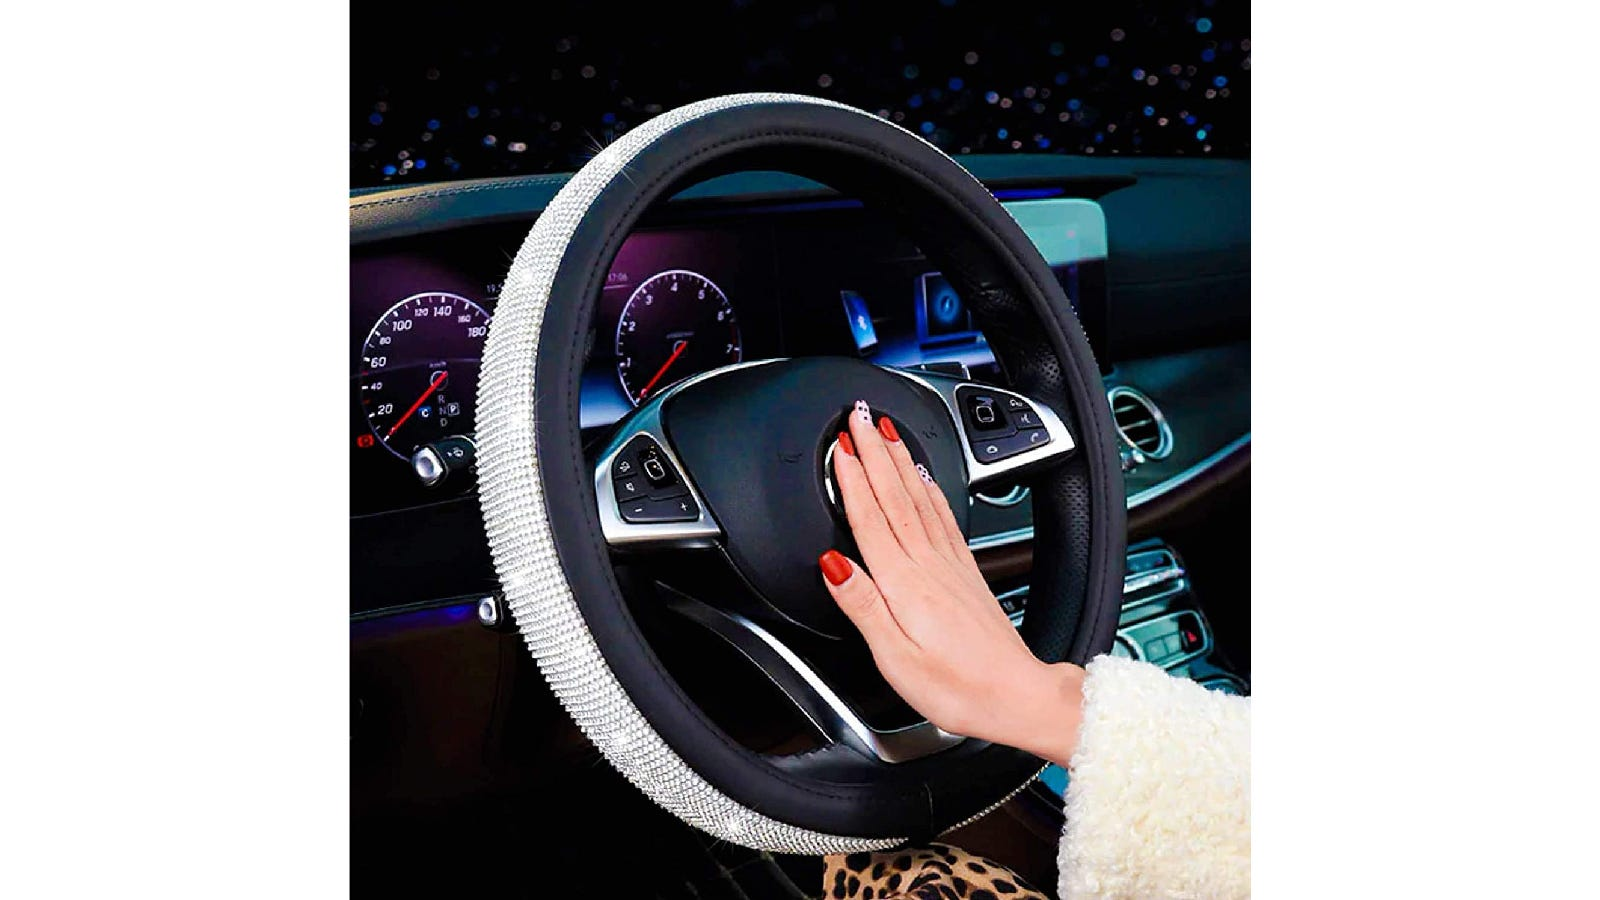 A steering wheel with a black cover that has white rhinestones around the outside edge.